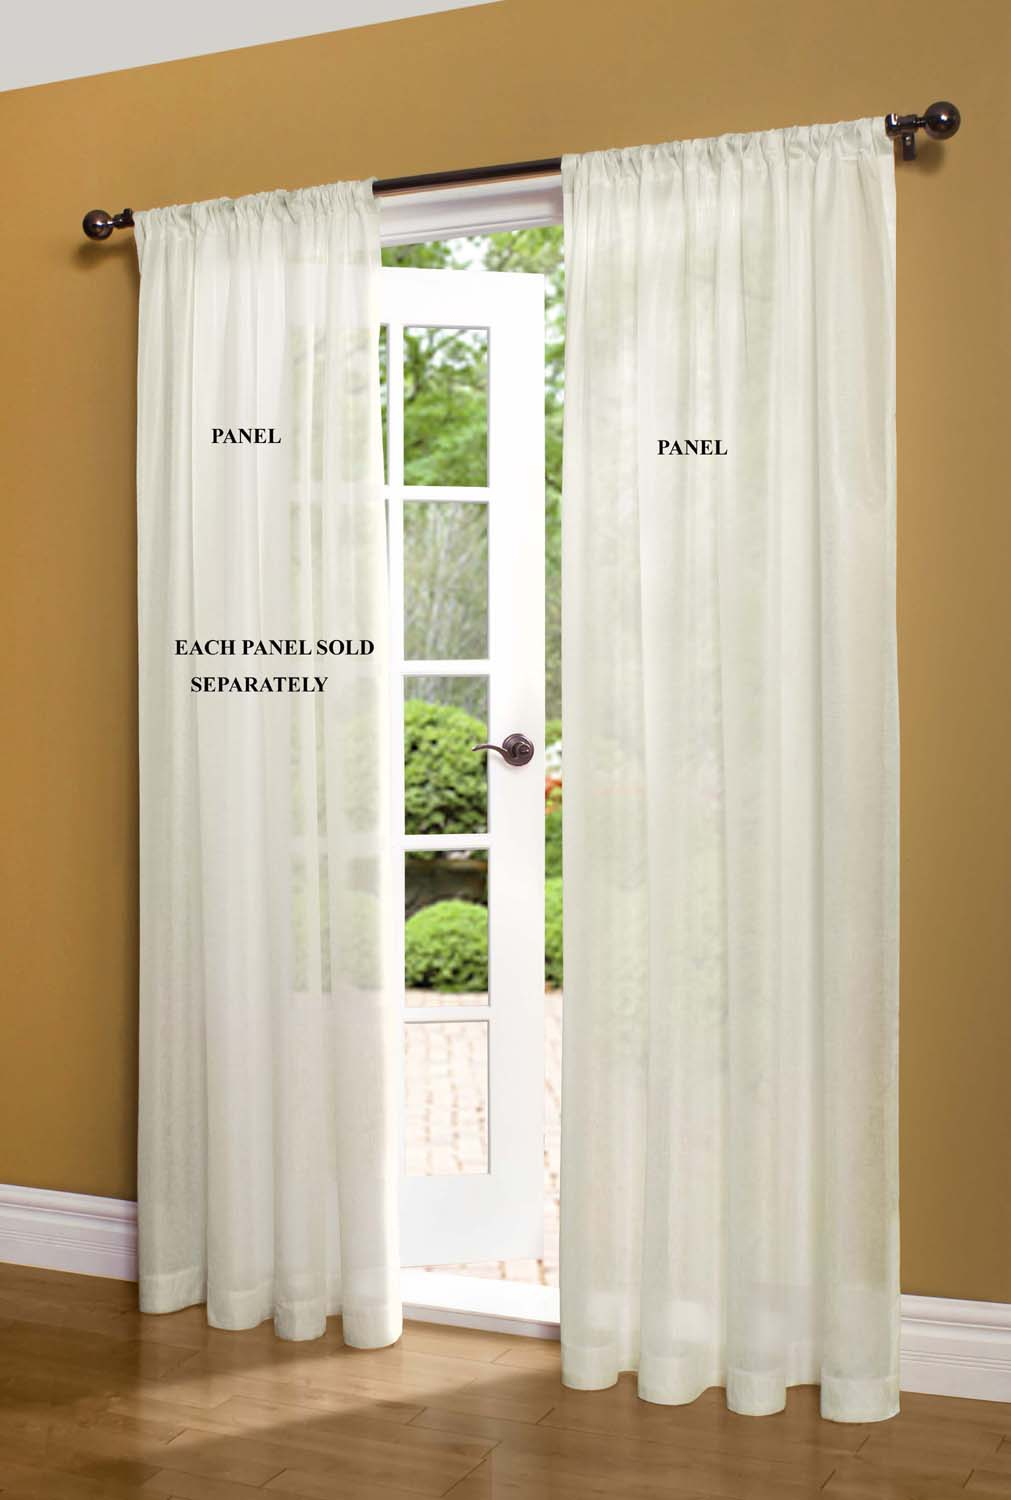 Sheer Window Curtains -Ï¿½Thecurtainshop in Luxury Collection Venetian Sheer Curtain Panel Pairs (Image 17 of 20)